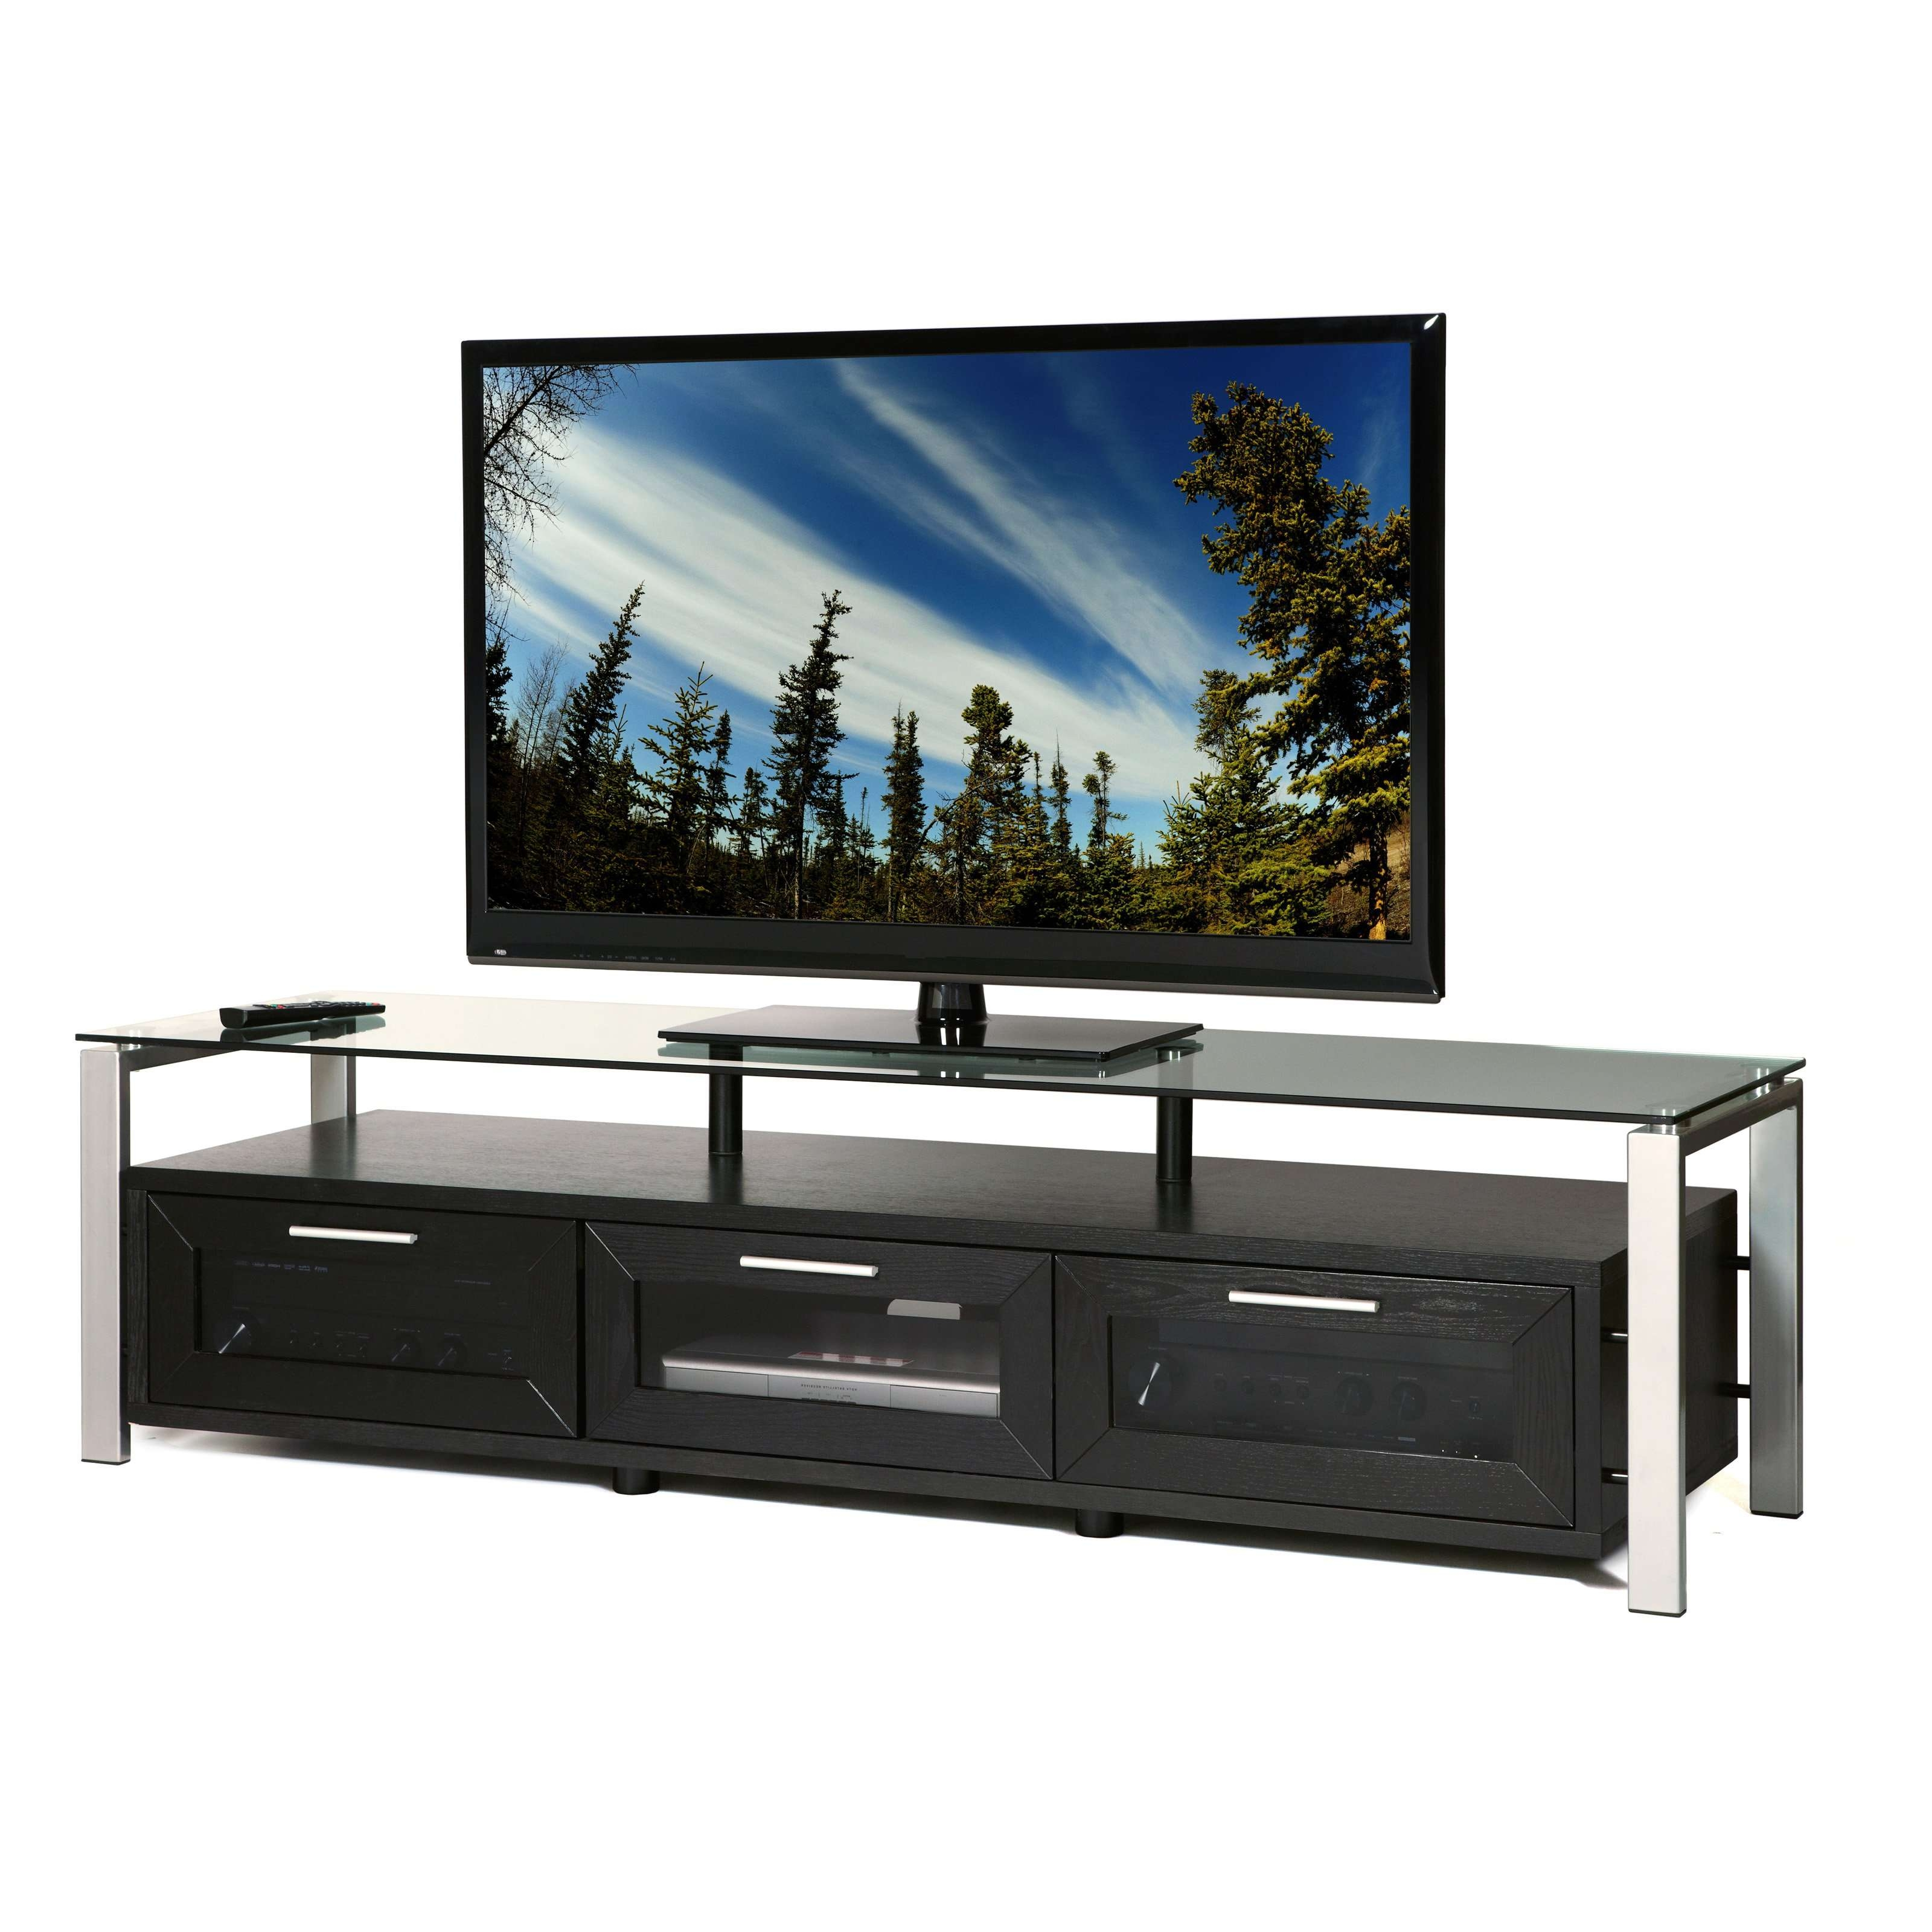 Trend 80 Inch Tv Stands 67 For Simple Home Decoration Ideas With Intended For 80 Inch Tv Stands (Gallery 5 of 15)